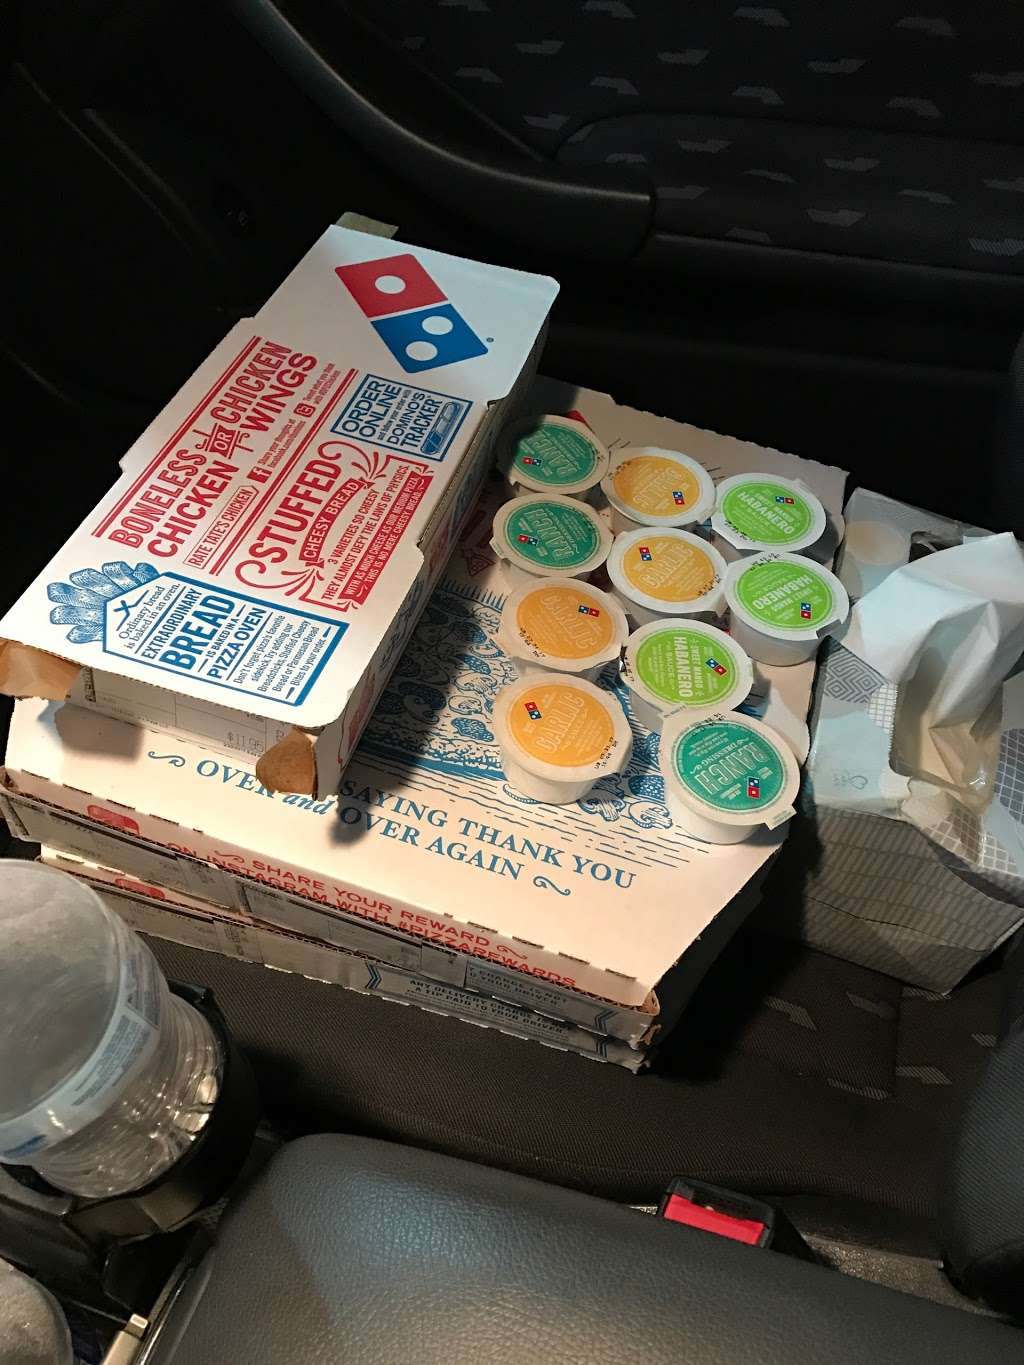 Dominos Pizza - meal delivery  | Photo 10 of 10 | Address: 826 N Glendora Ave, Covina, CA 91724, USA | Phone: (626) 331-9911